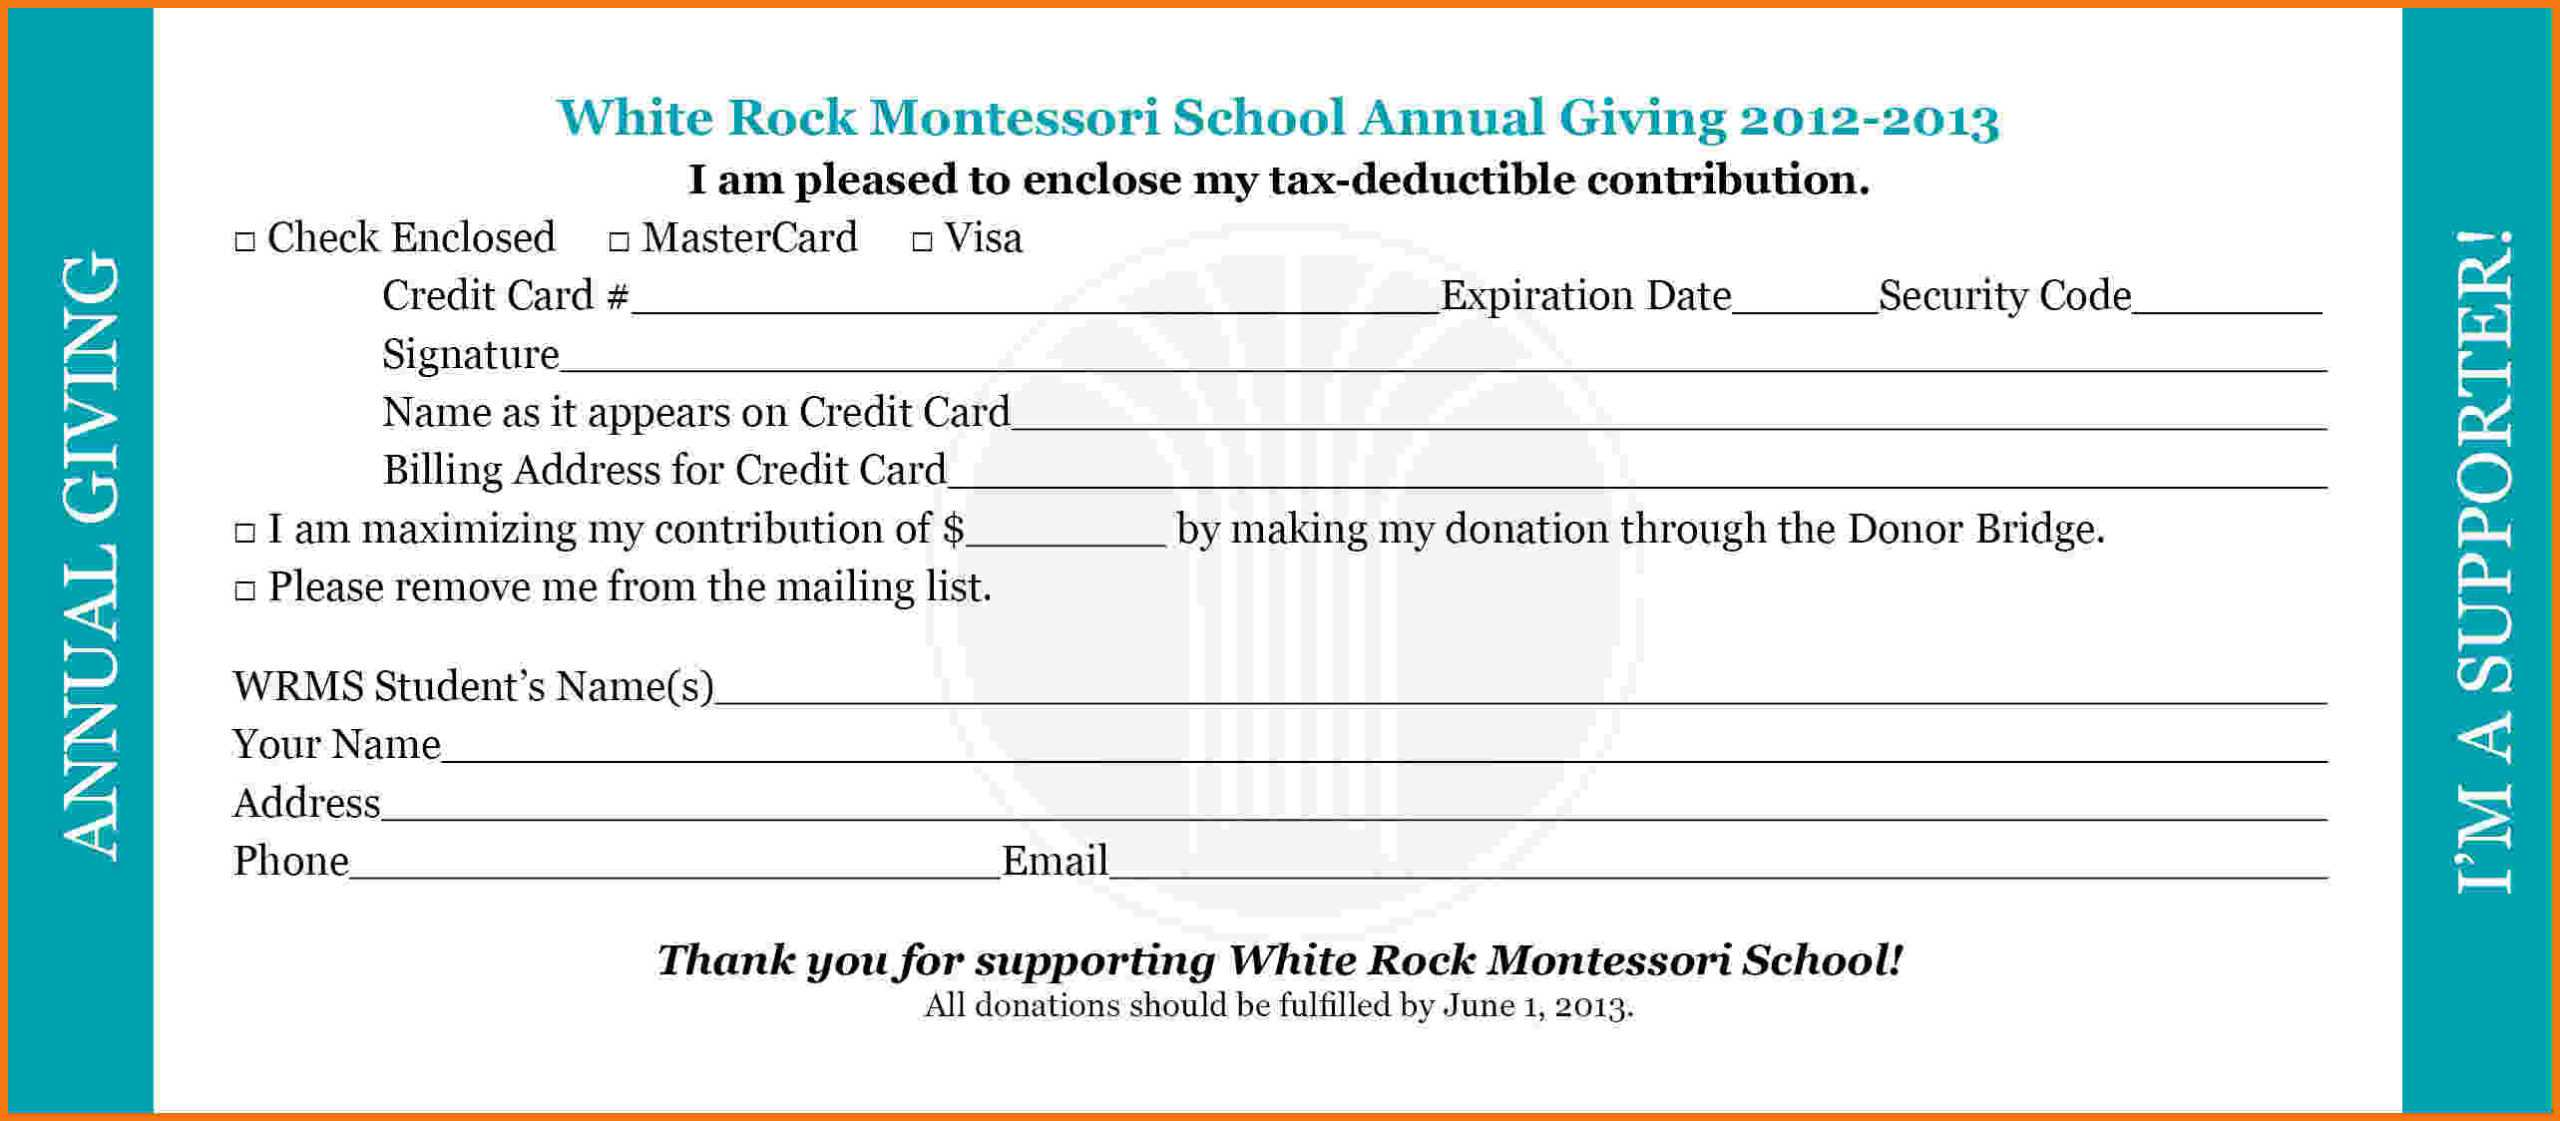 Pledge Card Clipart With Fundraising Pledge Card Template